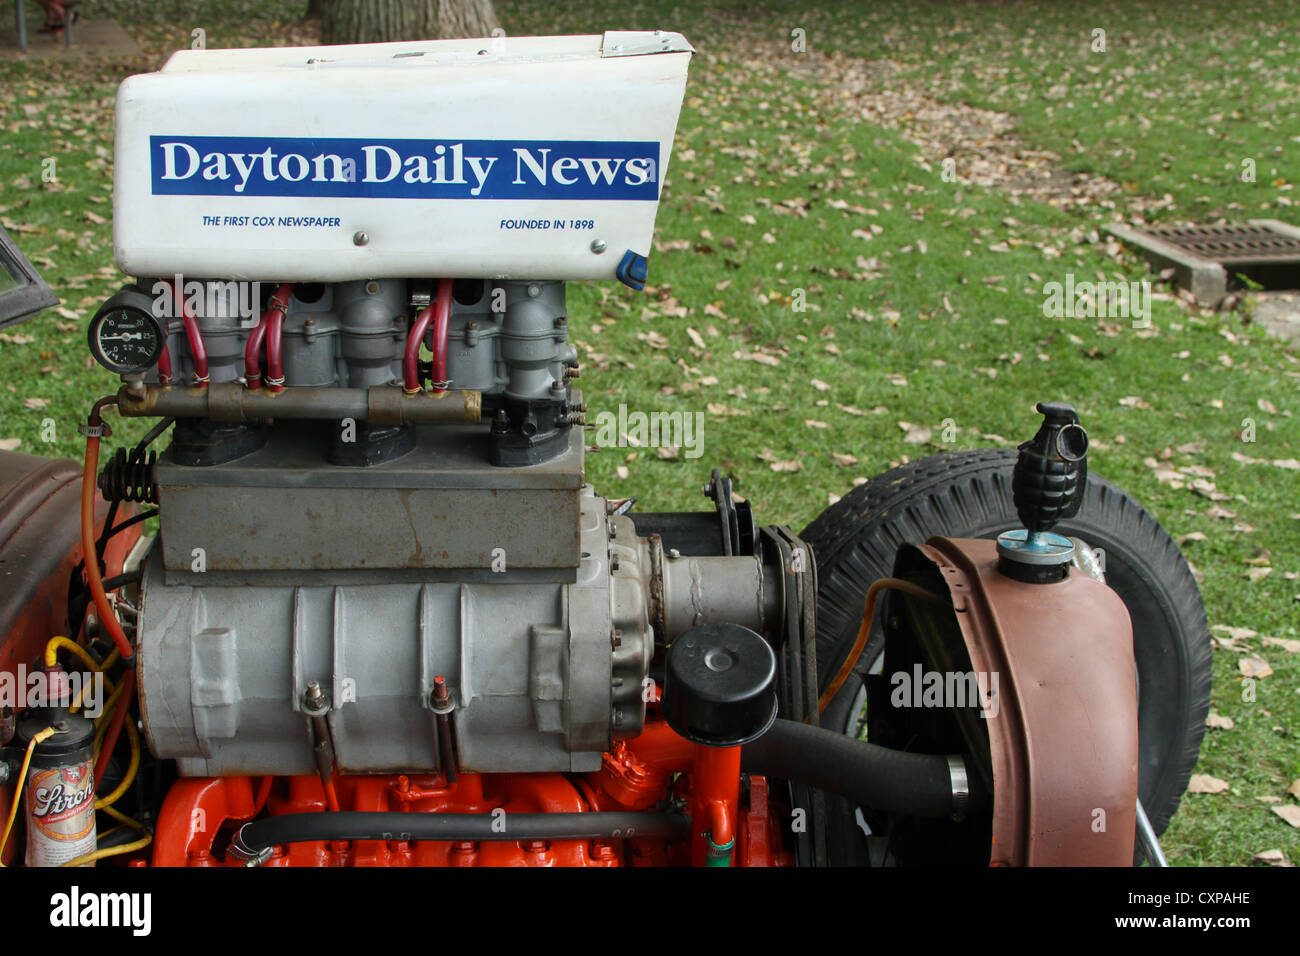 Rat Rod engine with a newspaper box as an air scoop. Dayton Daily News is the newspaper name. - Stock Image